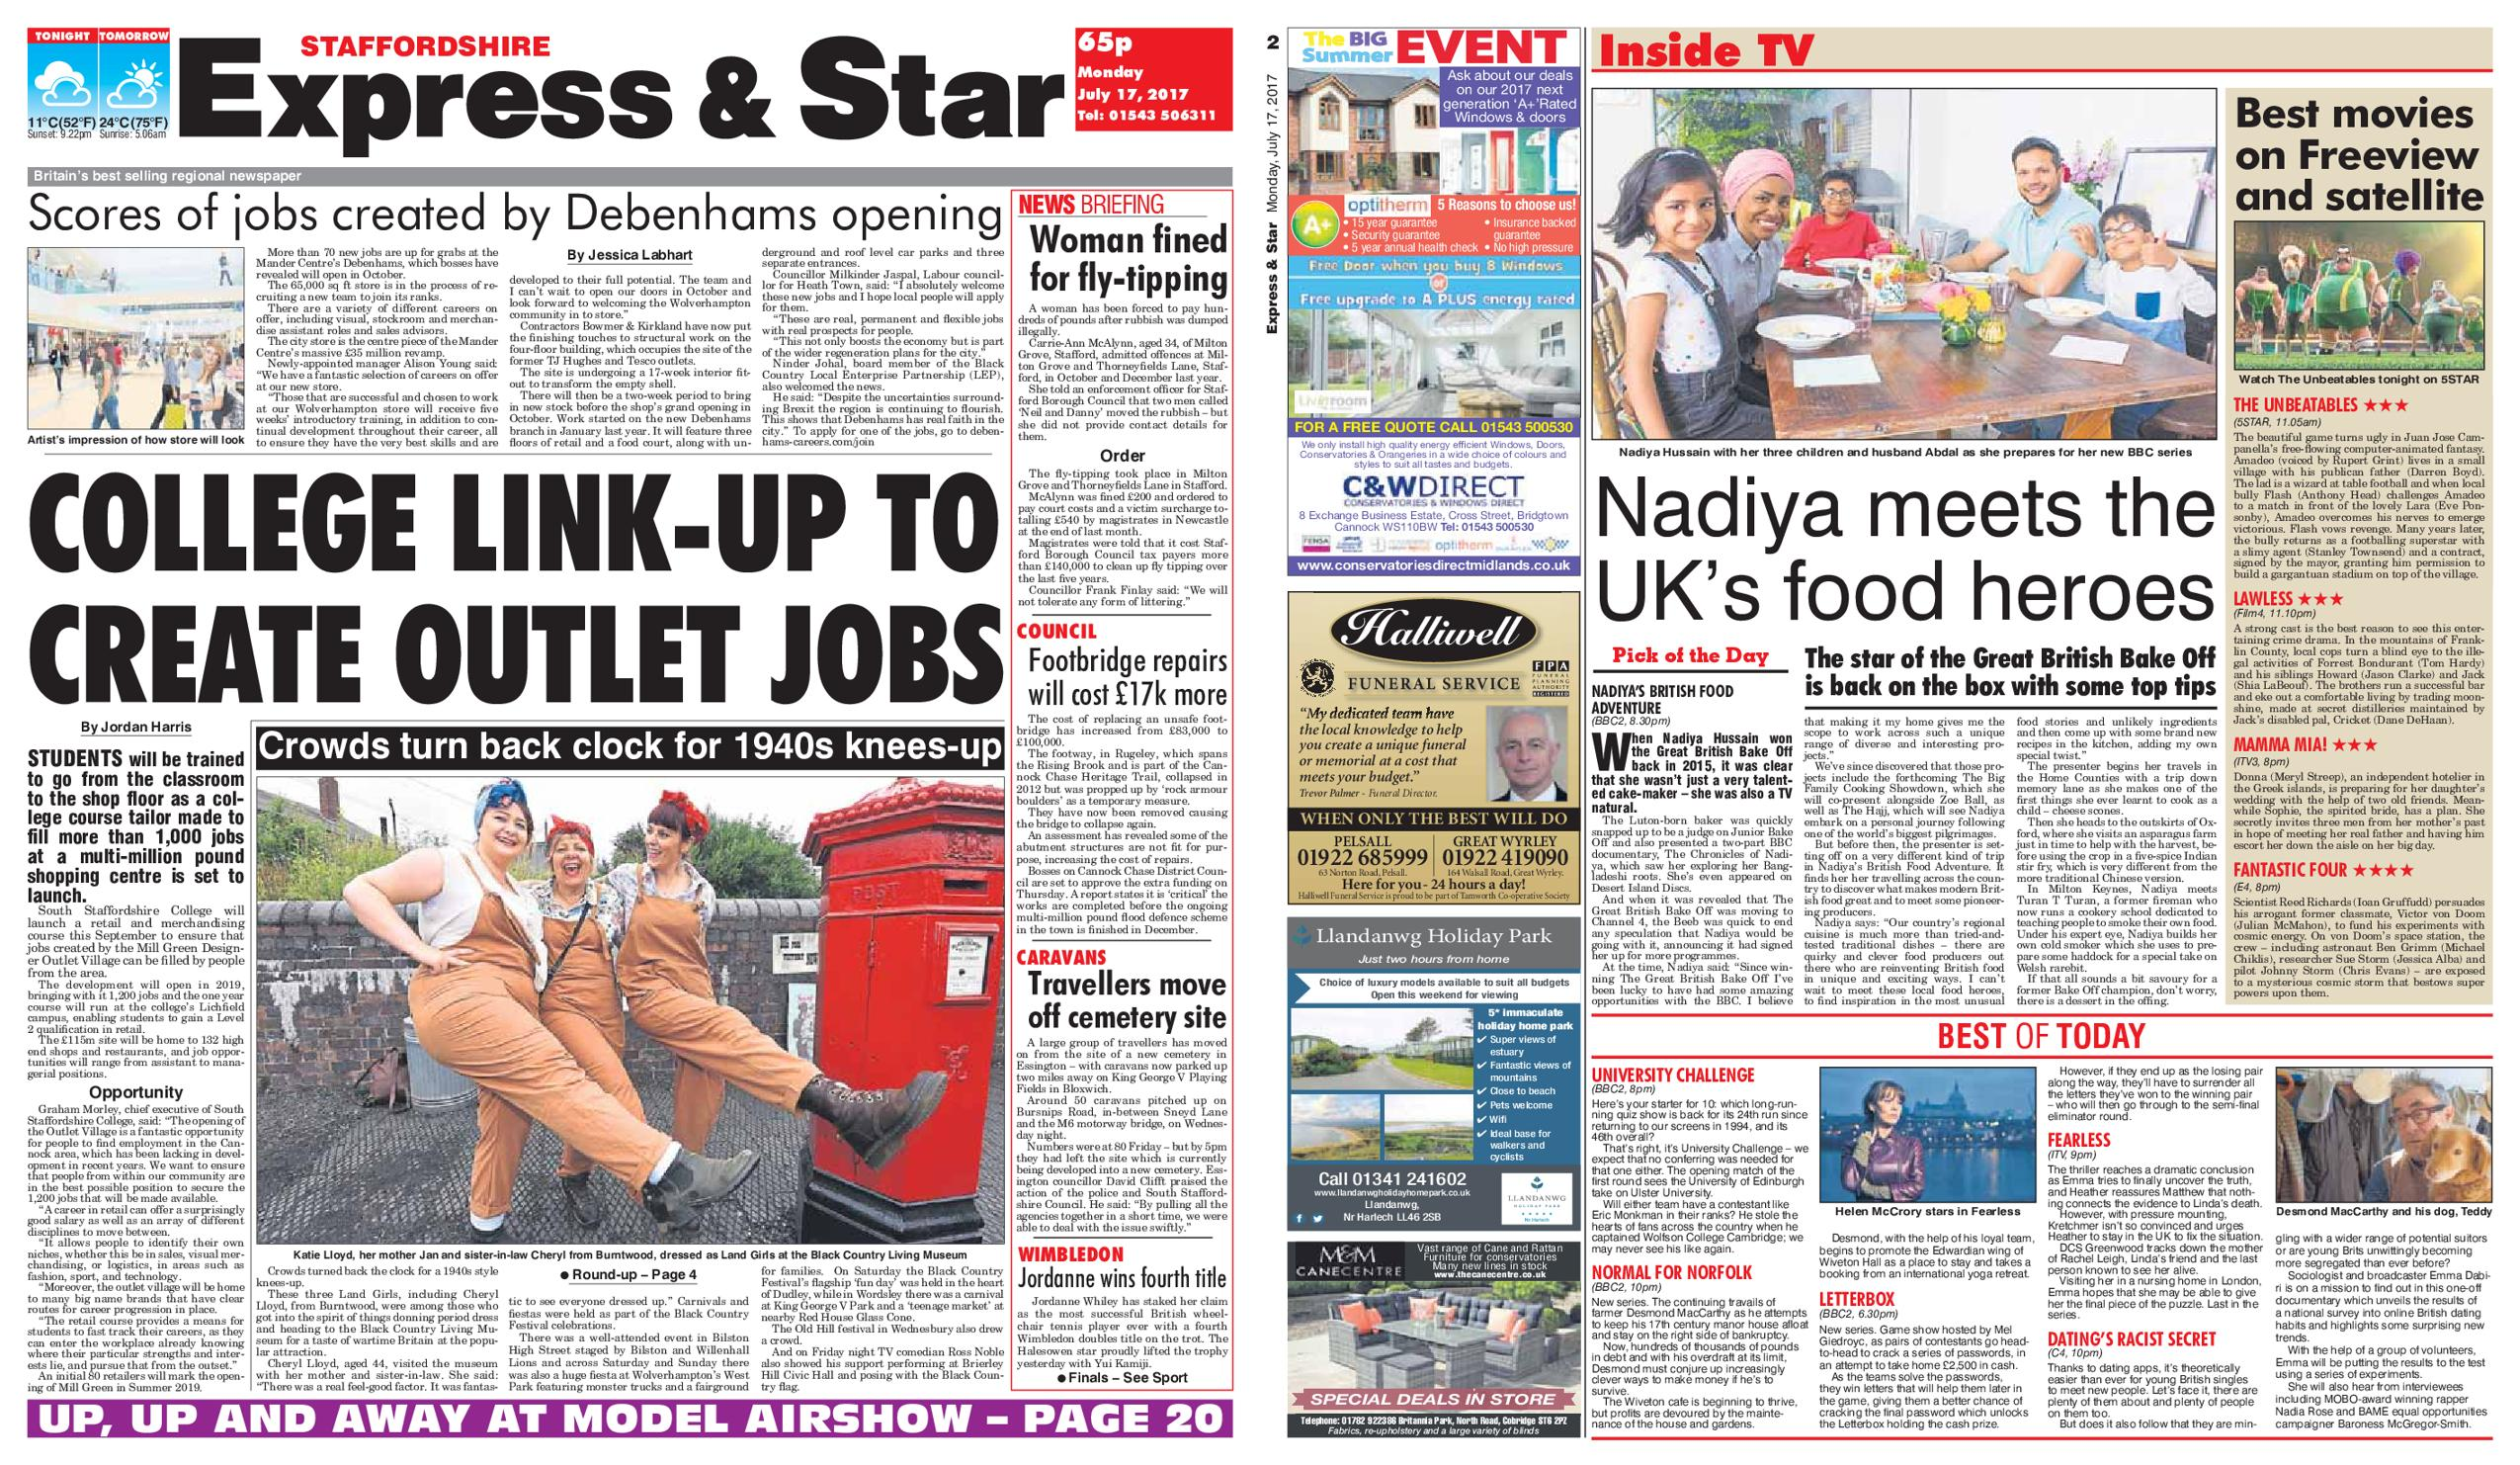 : Express and Star Staffordshire Edition July 17 2017